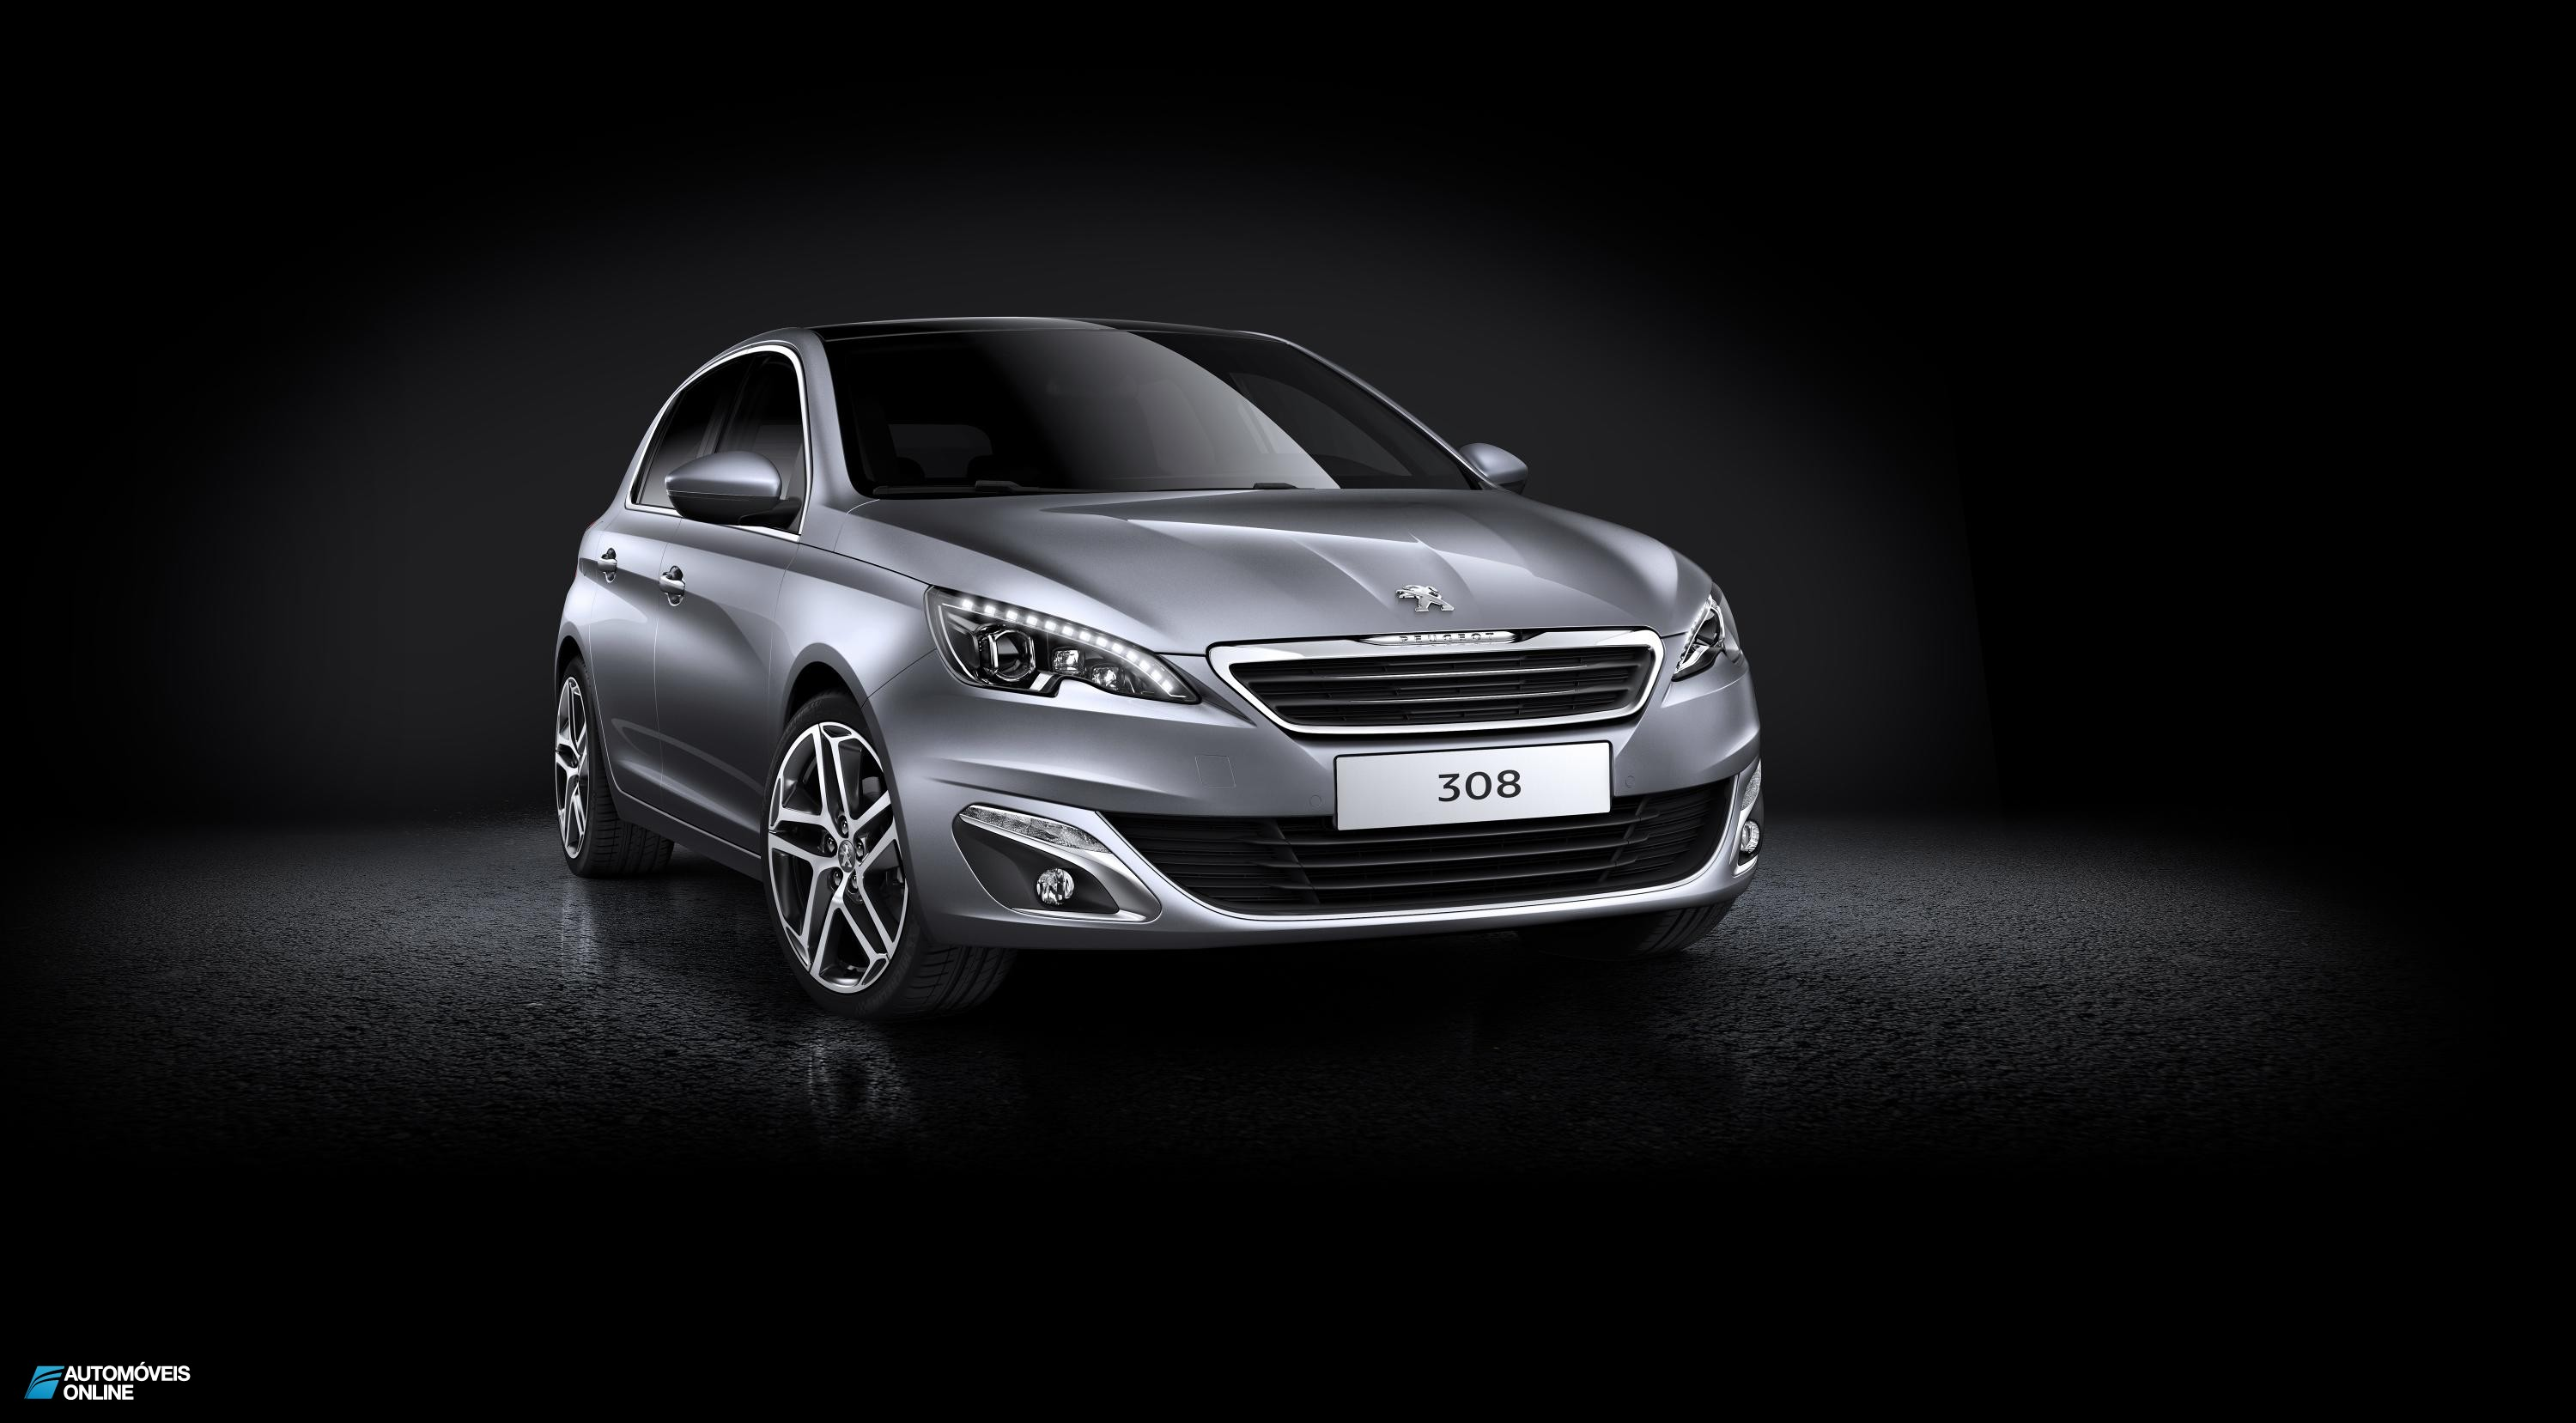 Novo Peugeot 308 2013 front right view